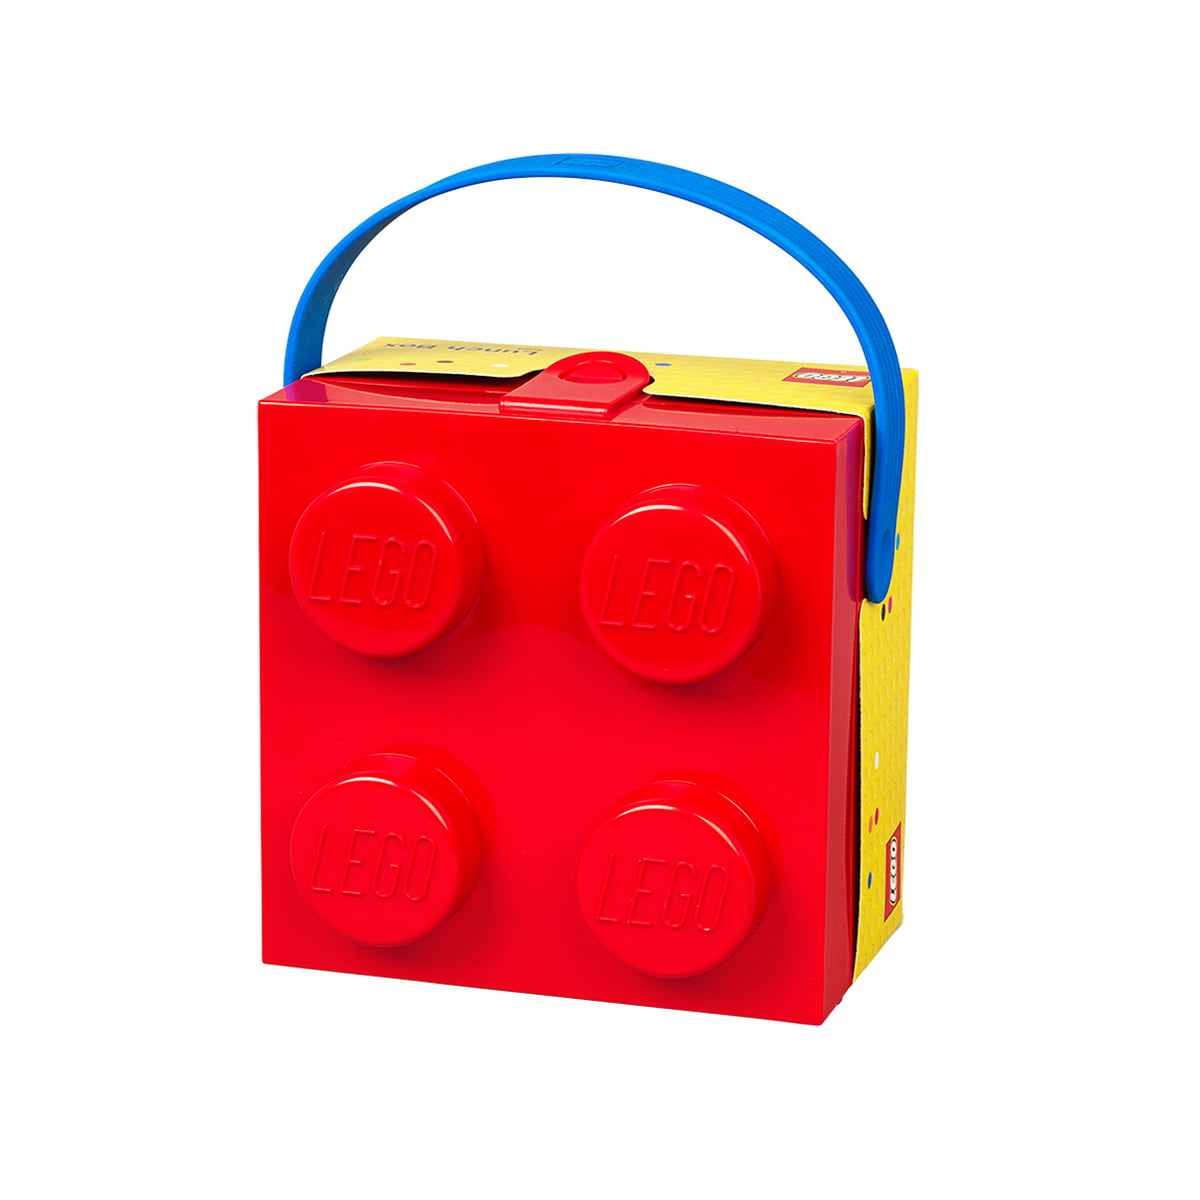 Lunch Box with handle by Lego in the shop